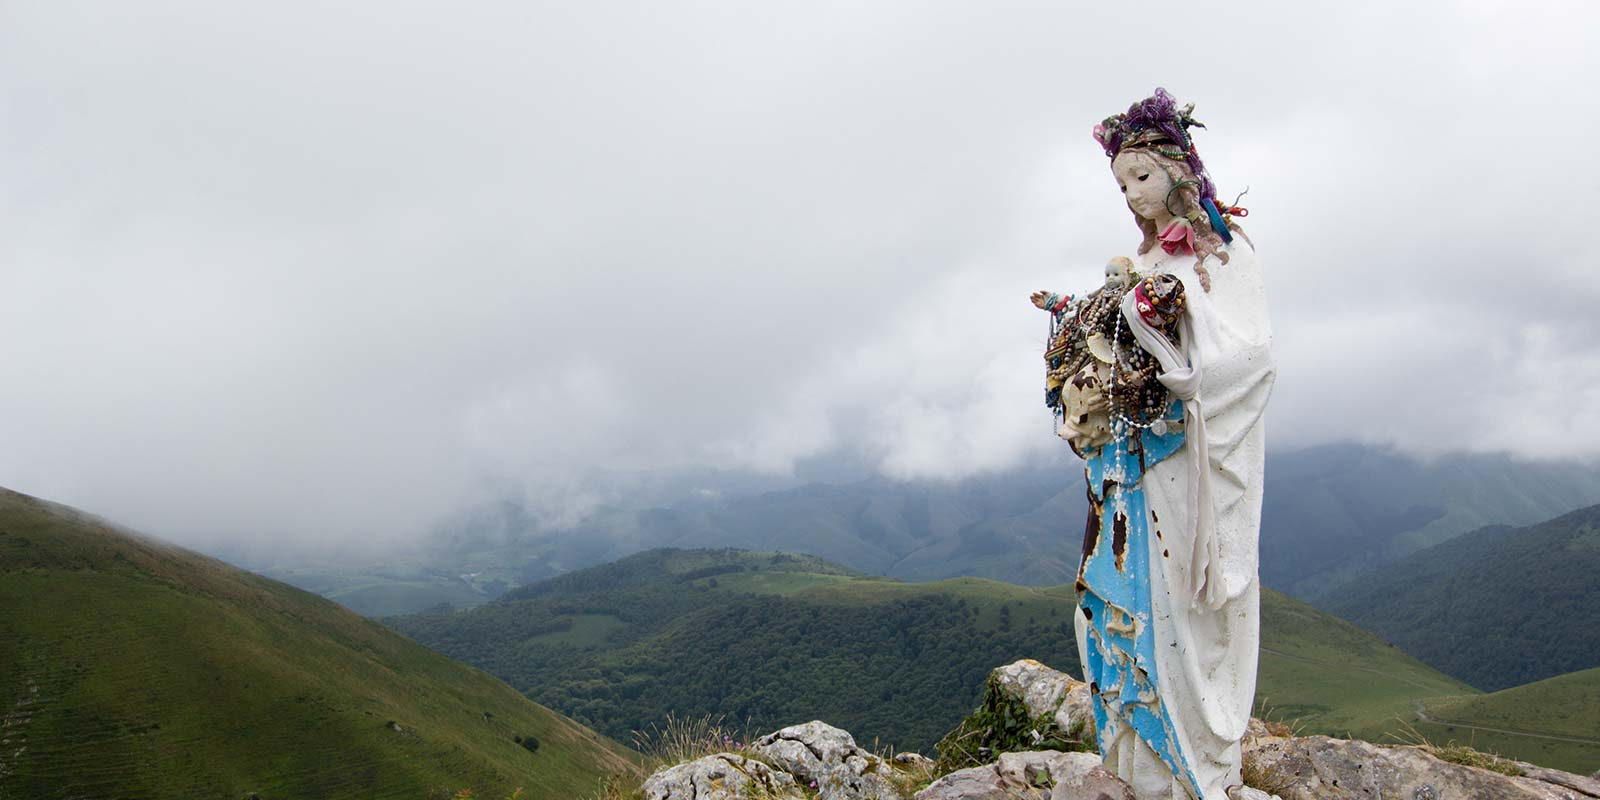 Medseas_Camino-de-Santiago10-statue-of-the-Virgin-Mary-in-in-mountains-of-Pyrenees